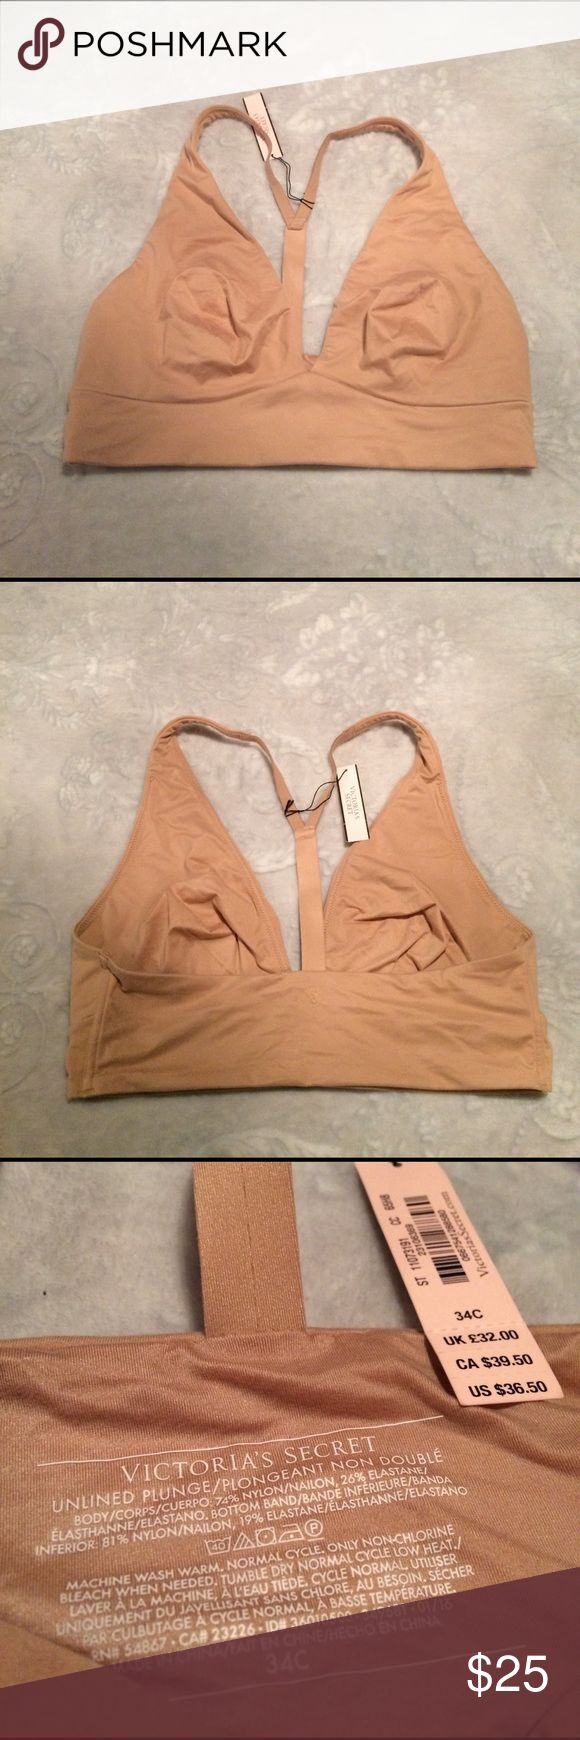 Victoria's Secret Nude Body Bralette 34C NWT T back design. Unlined no wire cups. I do not trade or hold items. Victoria's Secret Intimates & Sleepwear Bras